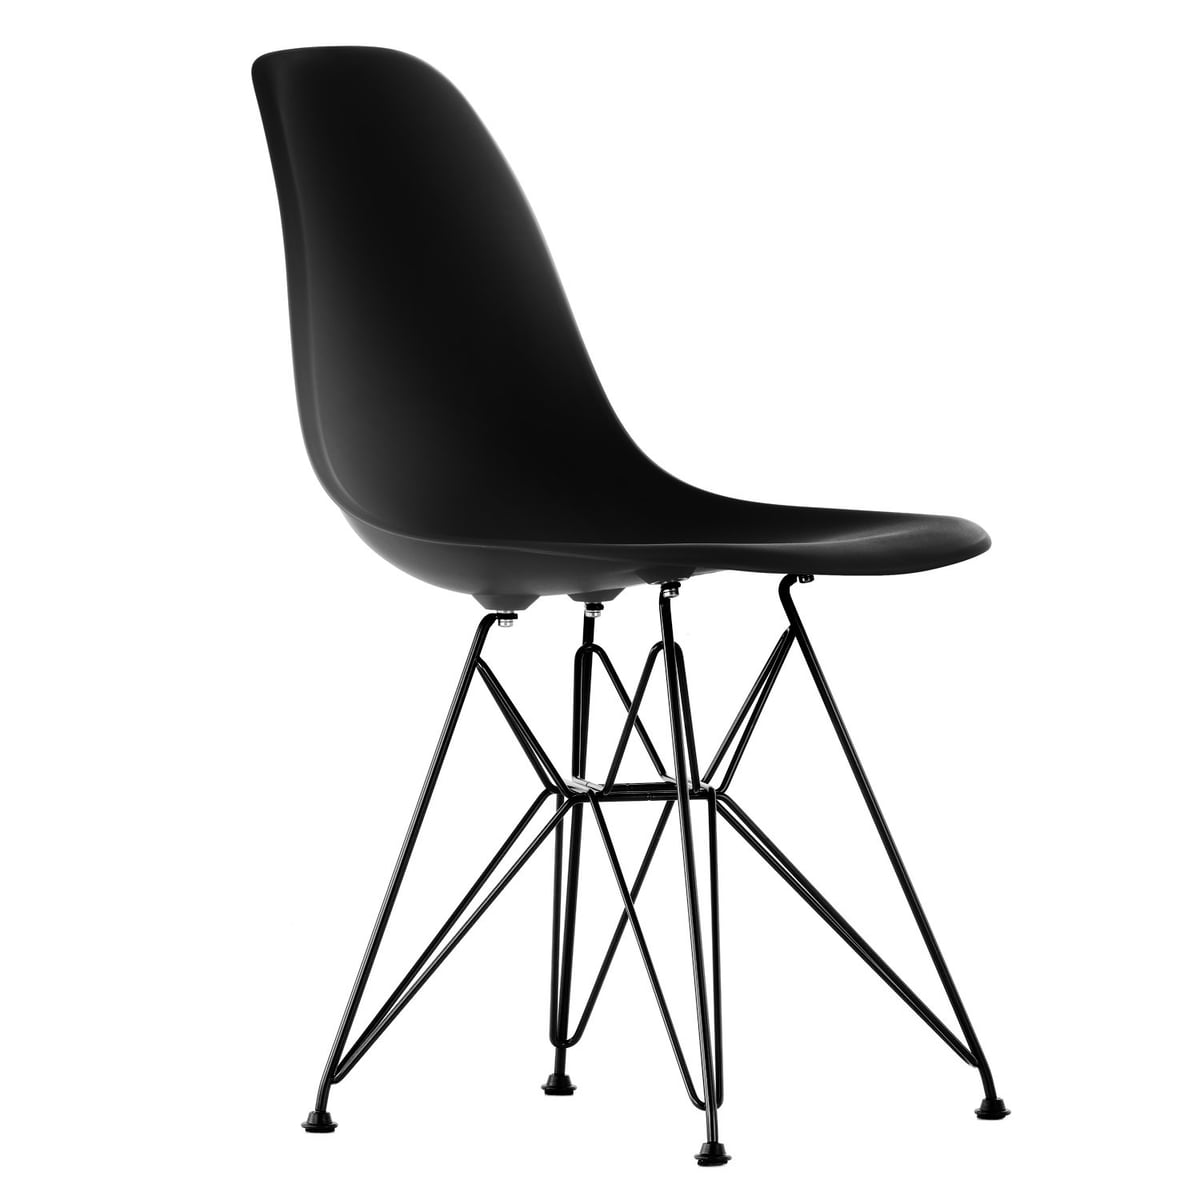 vitra eames plastic side chair dsr h 43 cm pulverbeschichtet basic dark. Black Bedroom Furniture Sets. Home Design Ideas